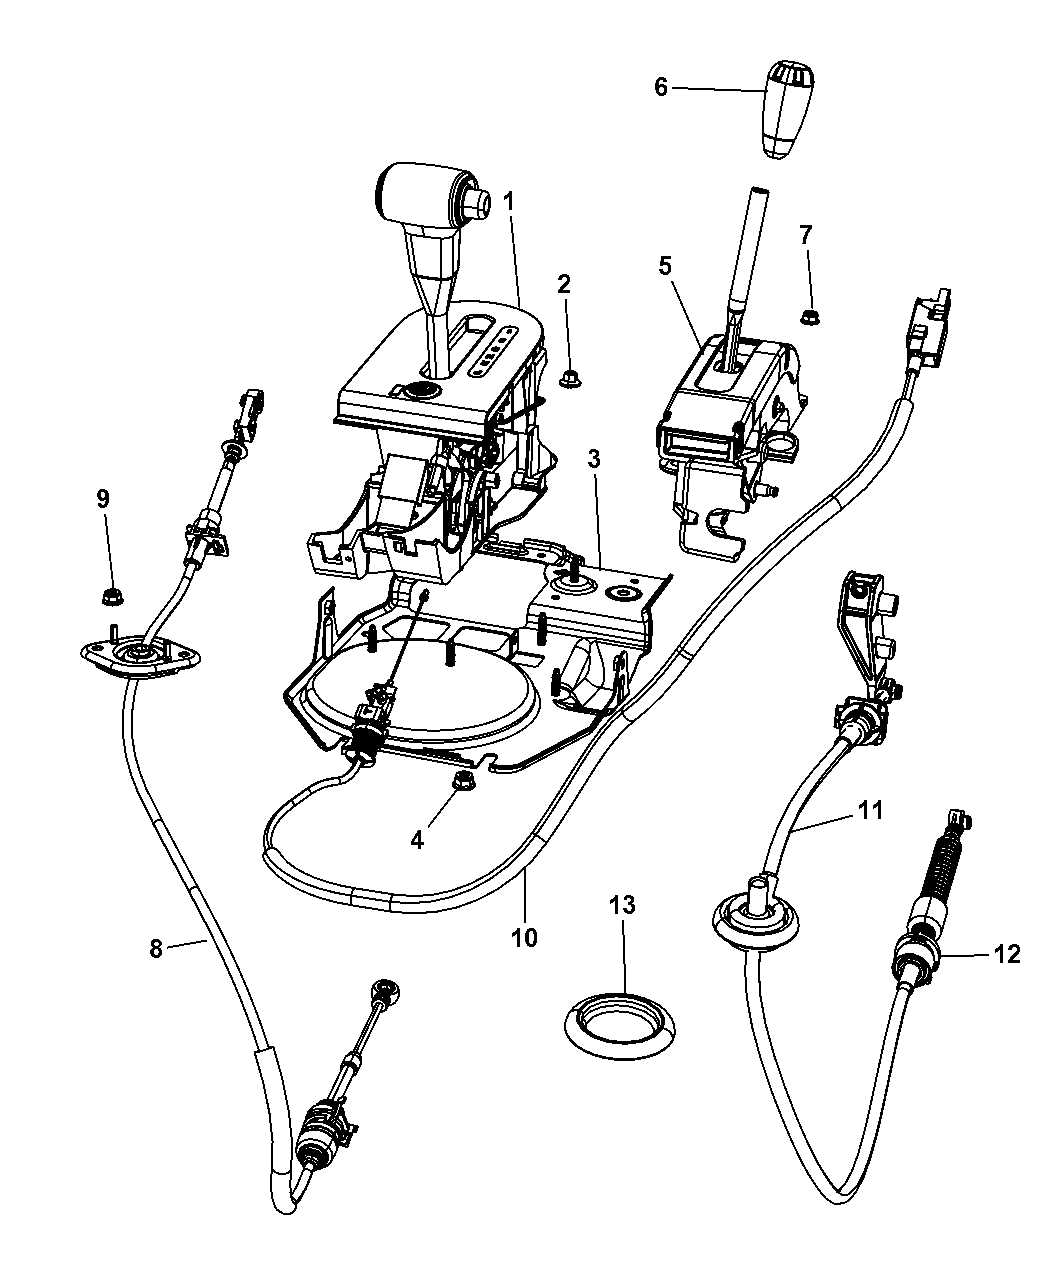 2008 Jeep Wrangler Gear Shift Control Mopar Parts Giant 2006 Unlimited Rubicon Wiring Diagram Thumbnail 1